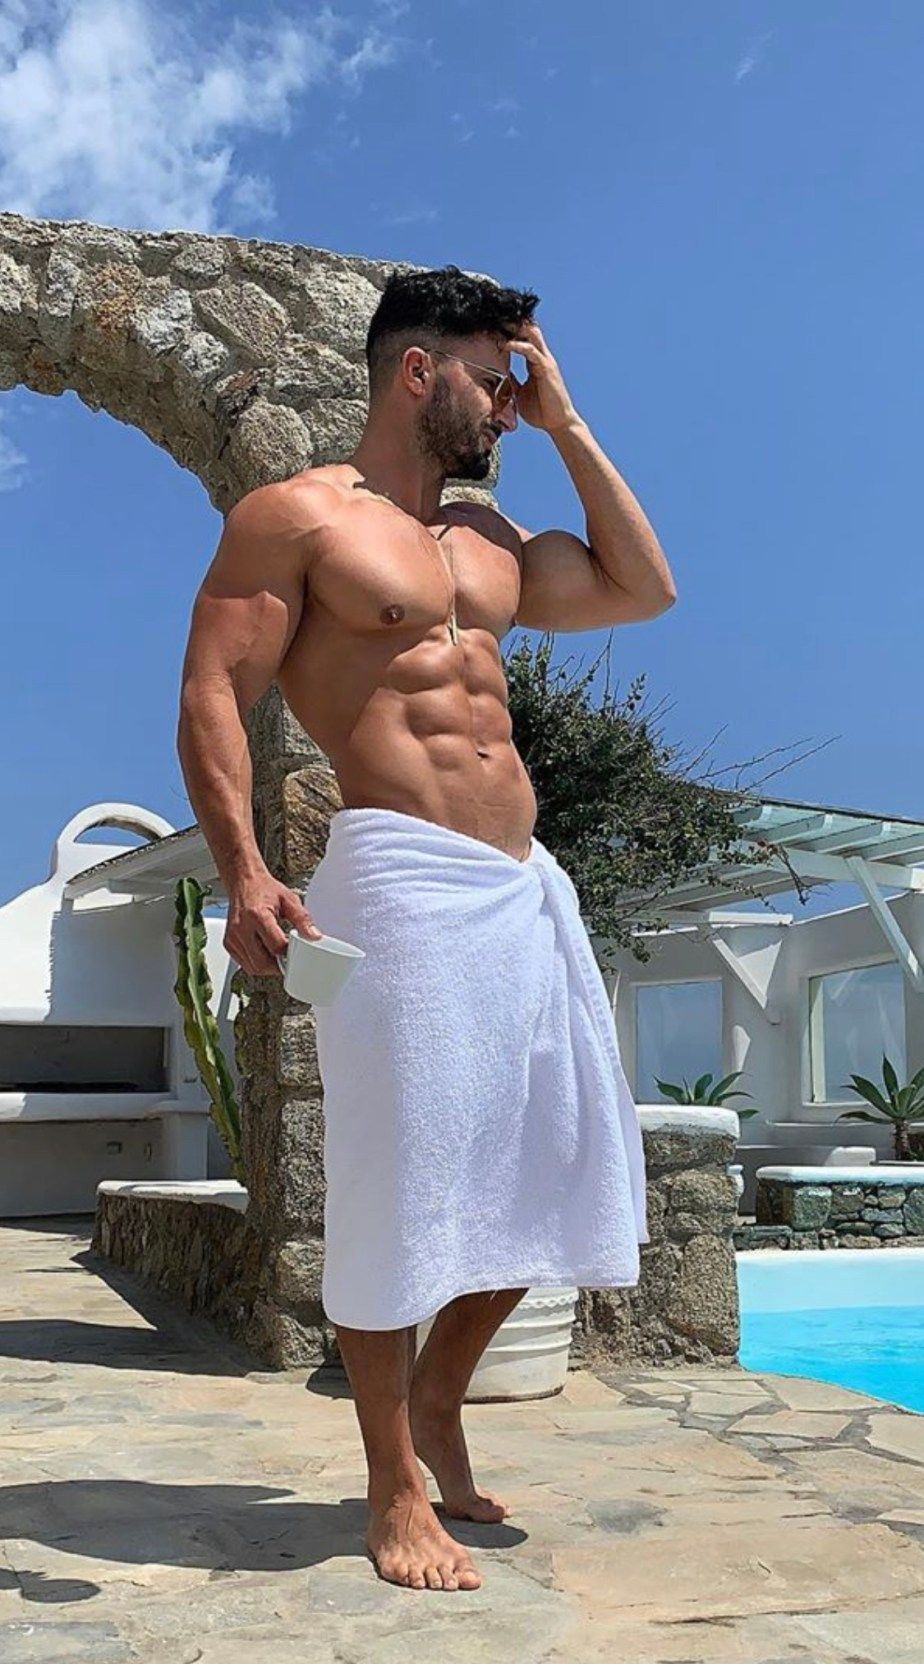 _plus01 in a towel bearded, shirtless and barefoot